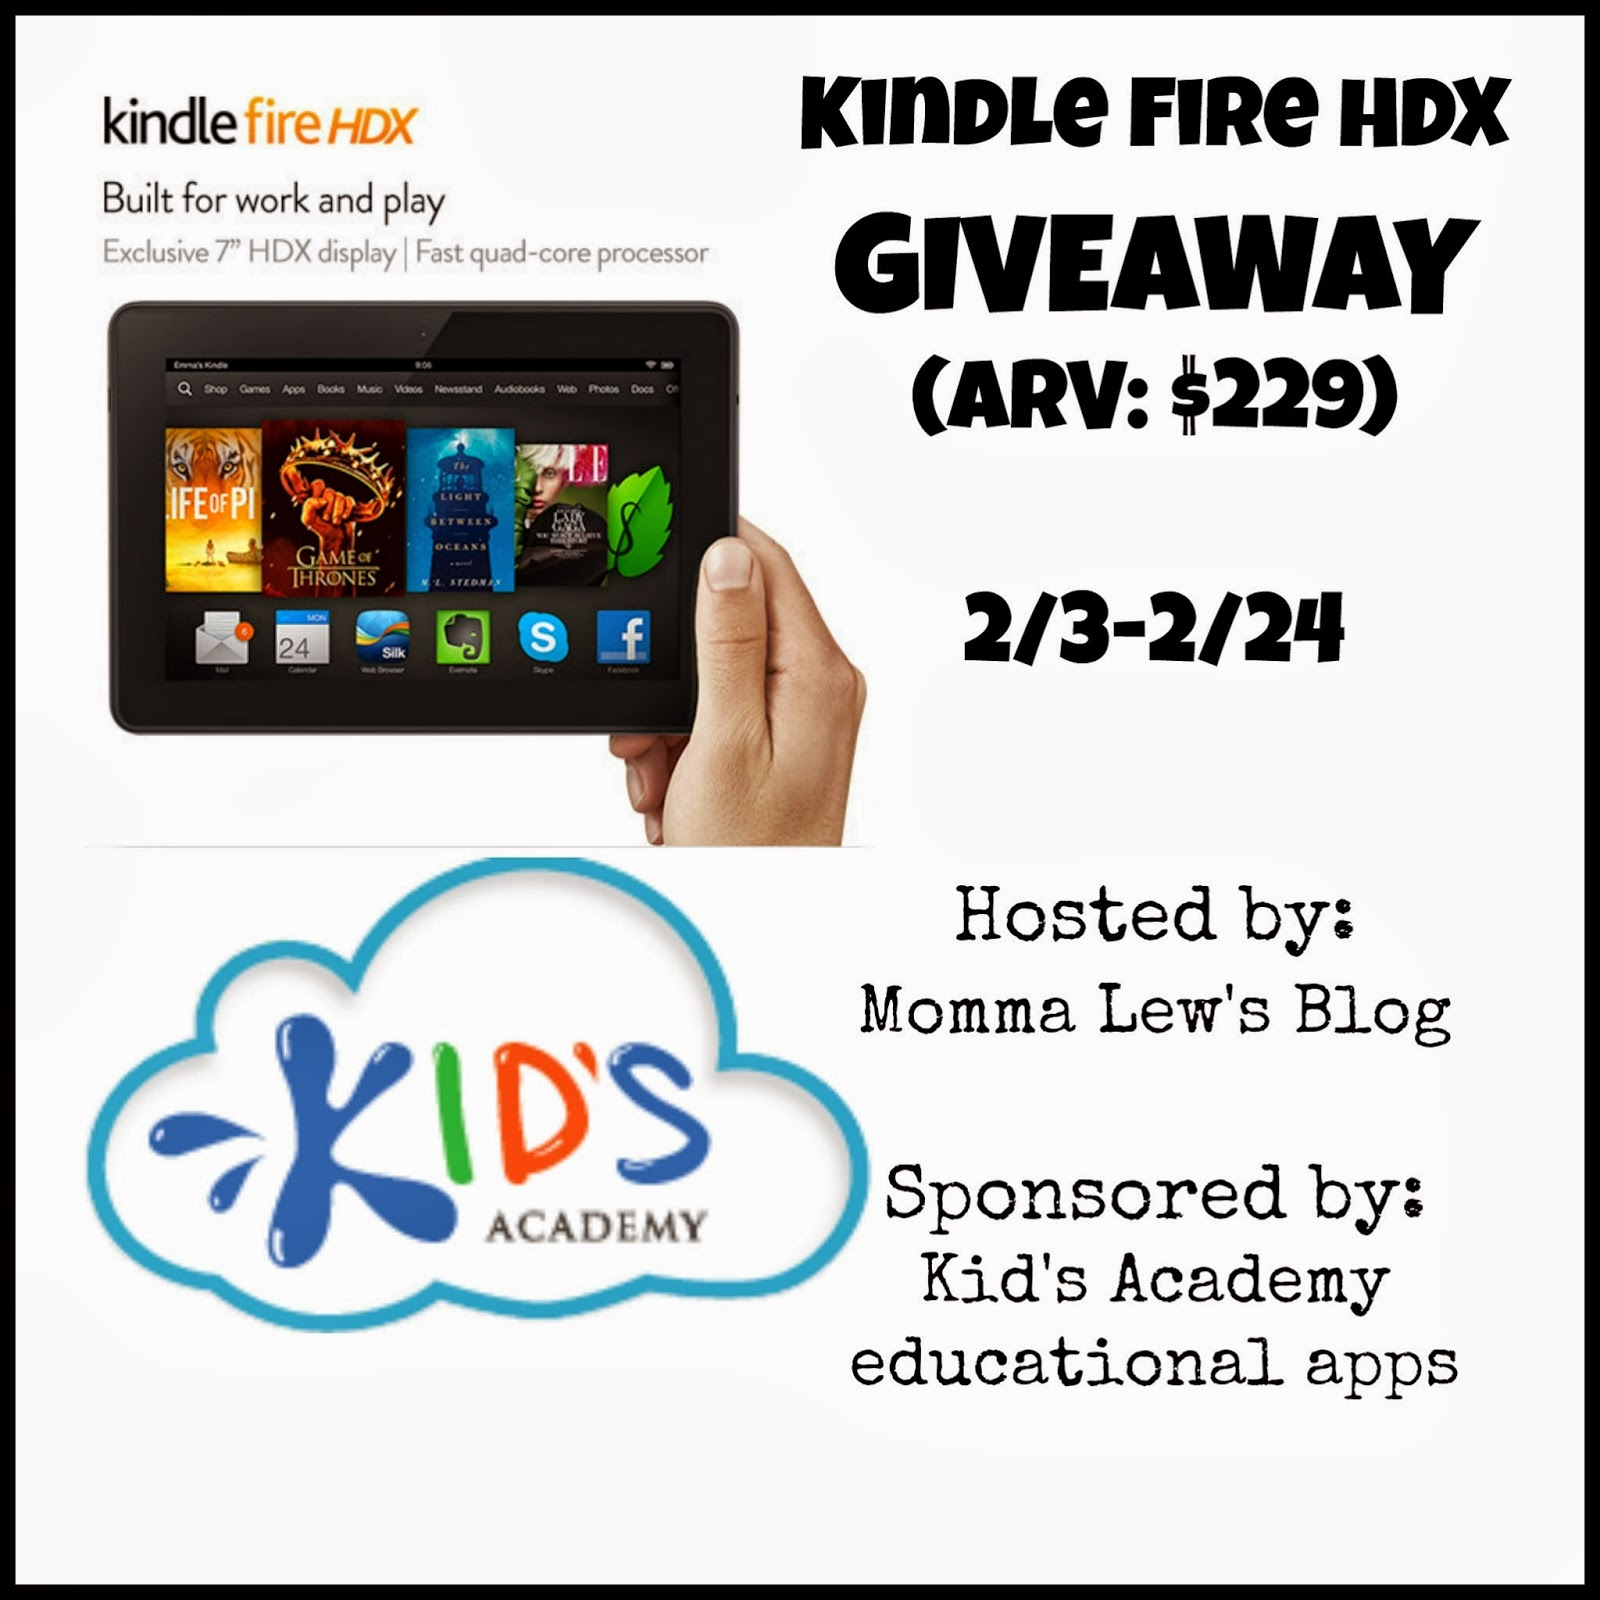 Sign up for the Kindle Fire HDX Giveaway. Event starts 2/3.